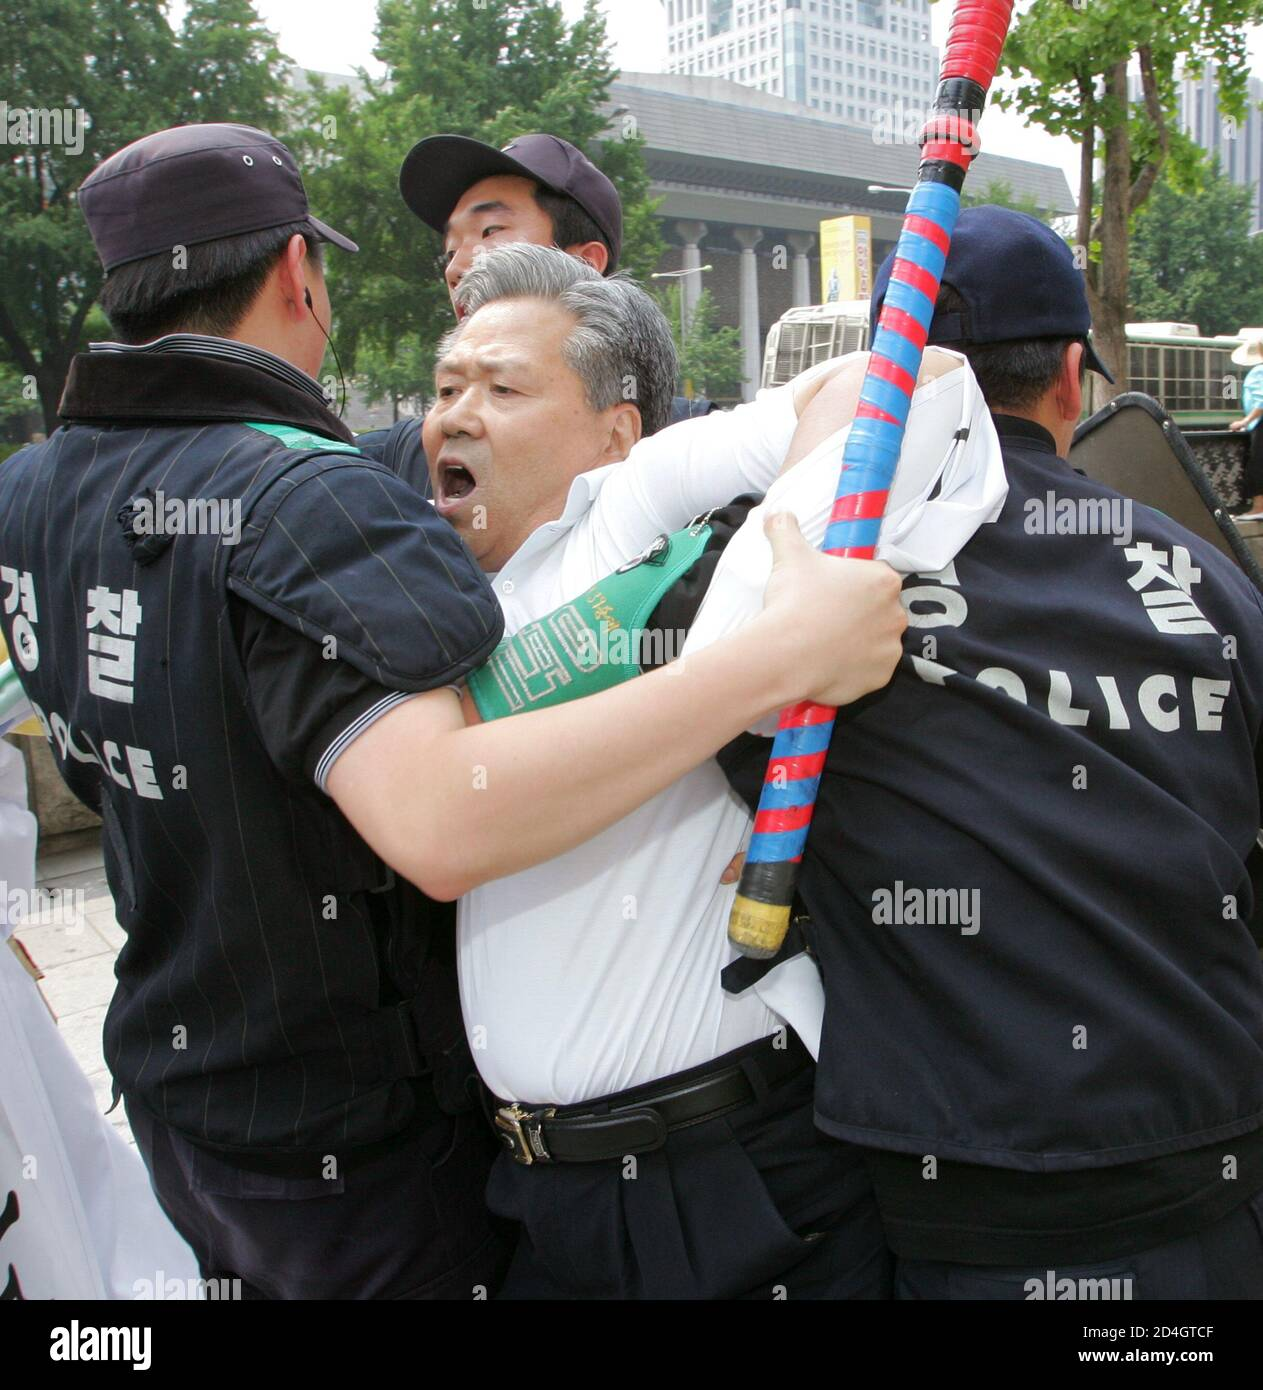 A South Korean anti-Japan protester, who tried to access the convoy of Japanese Prime Minister Junichiro Koizumi, is detained by police near the Presidential Blue House in Seoul June 20, 2005. Koizumi arrived in Seoul on Monday for a meeting with South Korean President Roh Moo-hyun to try to patch up ties frayed by disputes over their countries' bitter history. REUTERS/You Sung-Ho  KKH/CCK Stock Photo